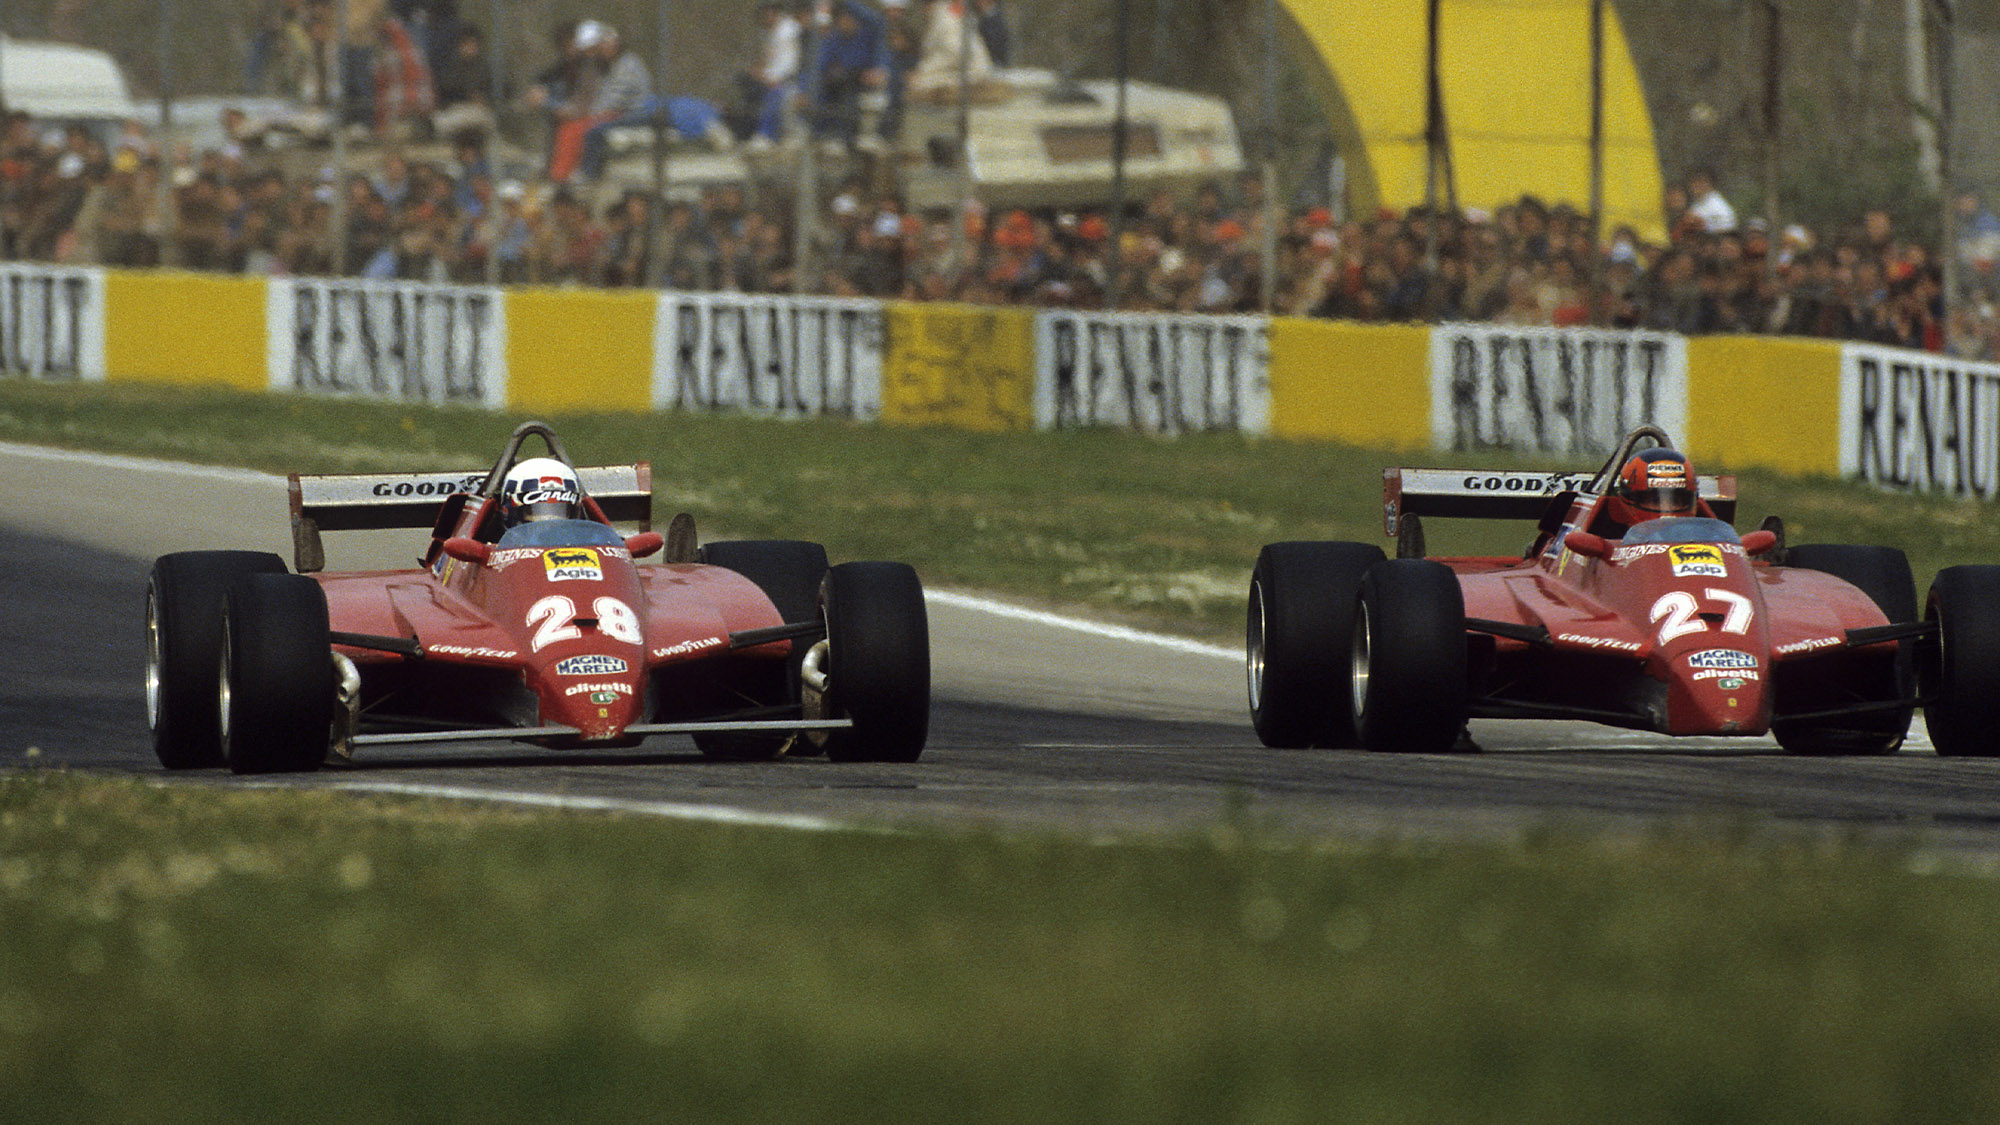 Didier Pironi and Gilles Villeneuve's Ferraris side by side at Imola in the 1982 San Marino Grand Prix